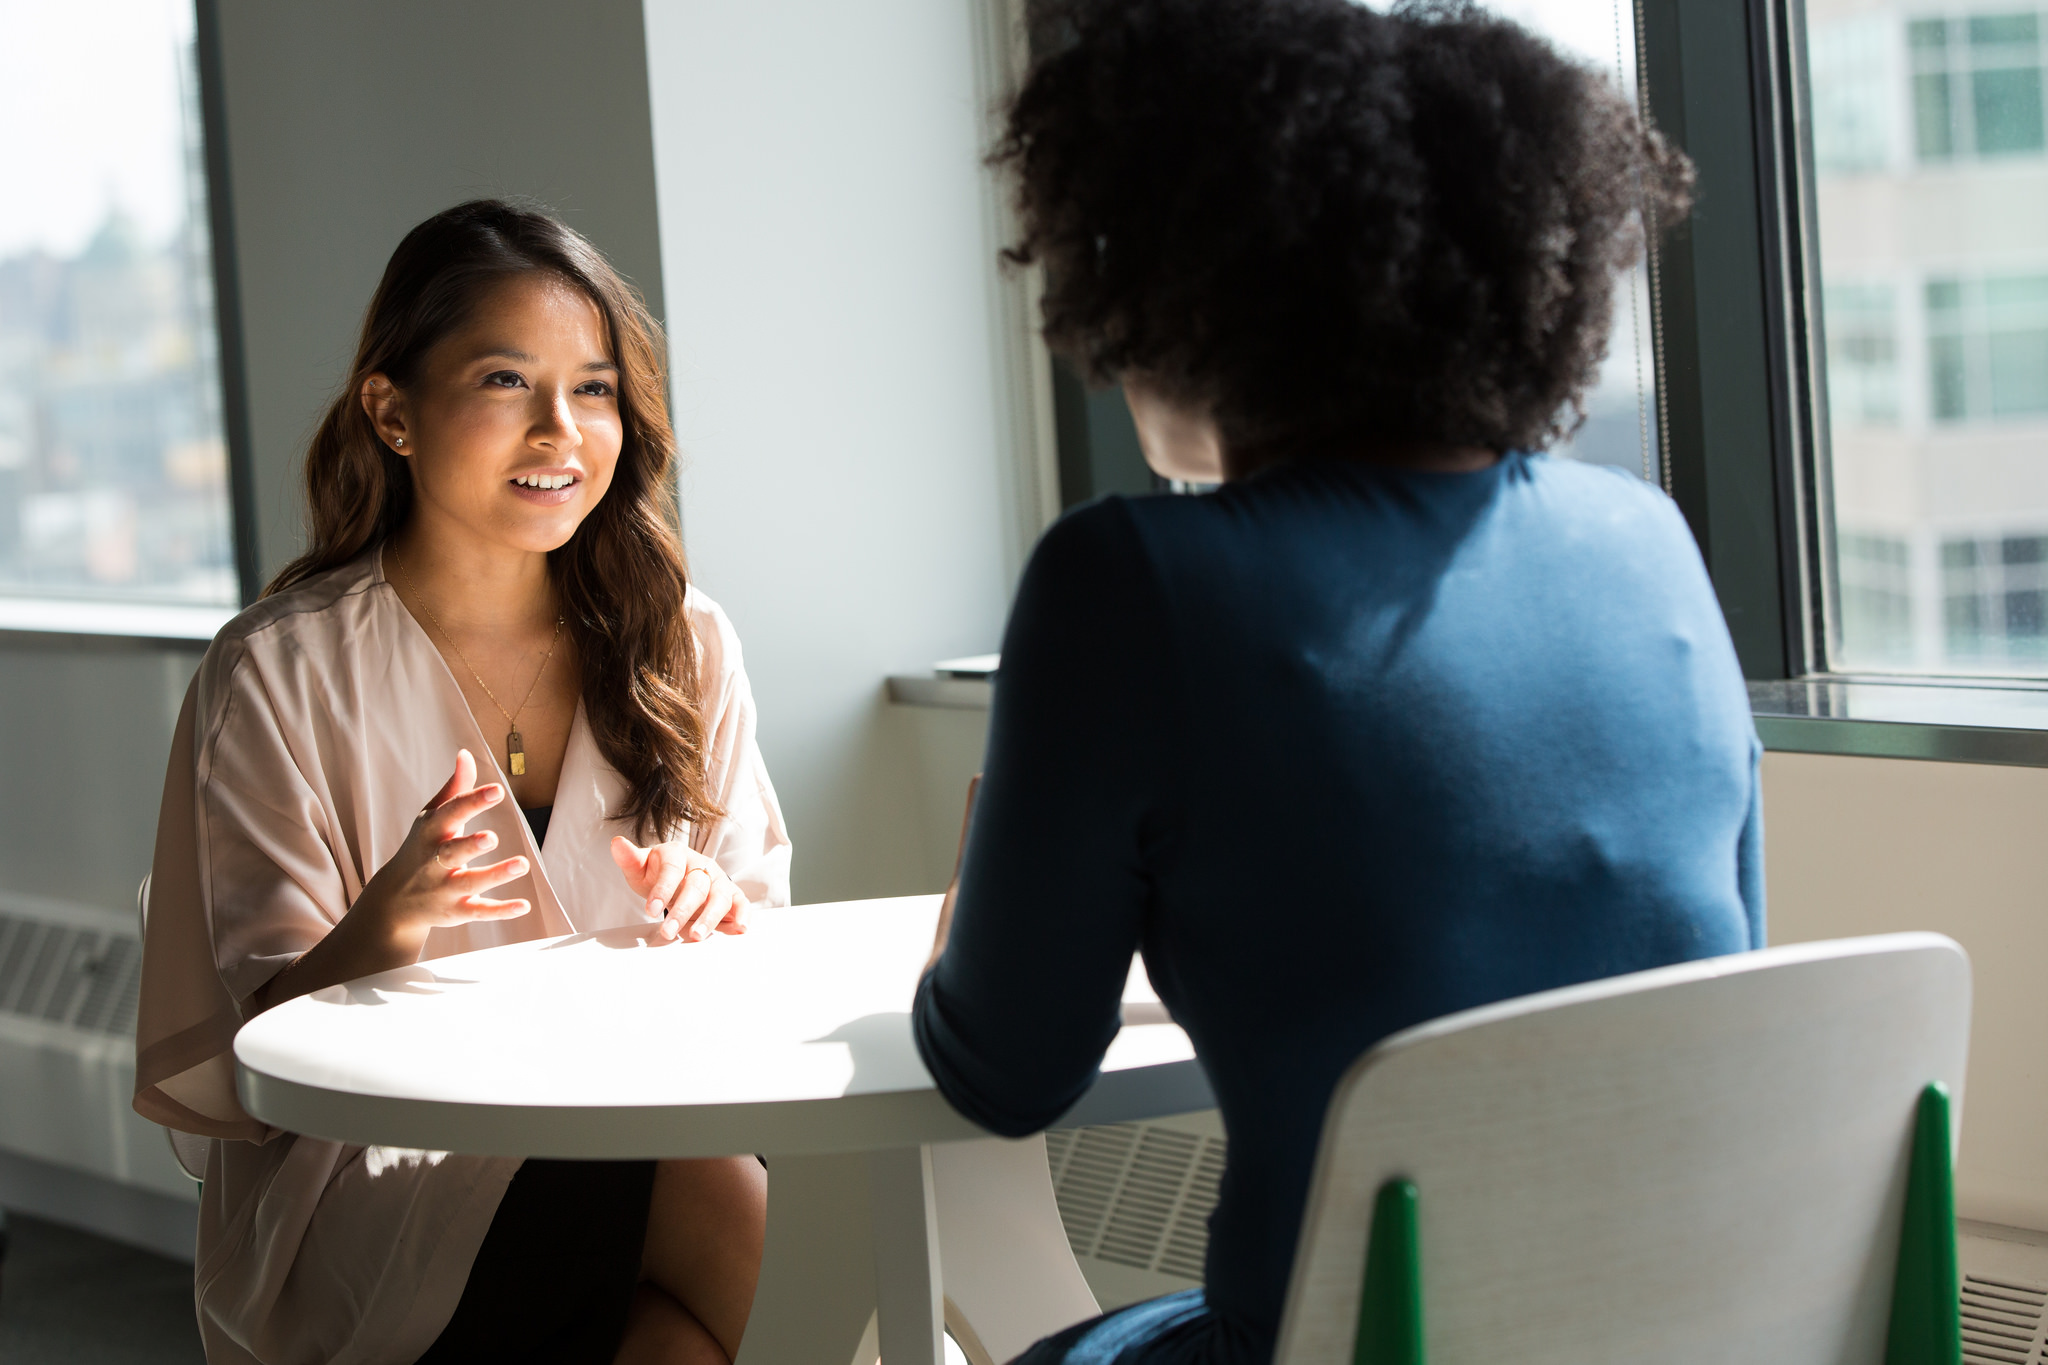 Two professionally-dressed woman sitting at a table, probably in an interview.